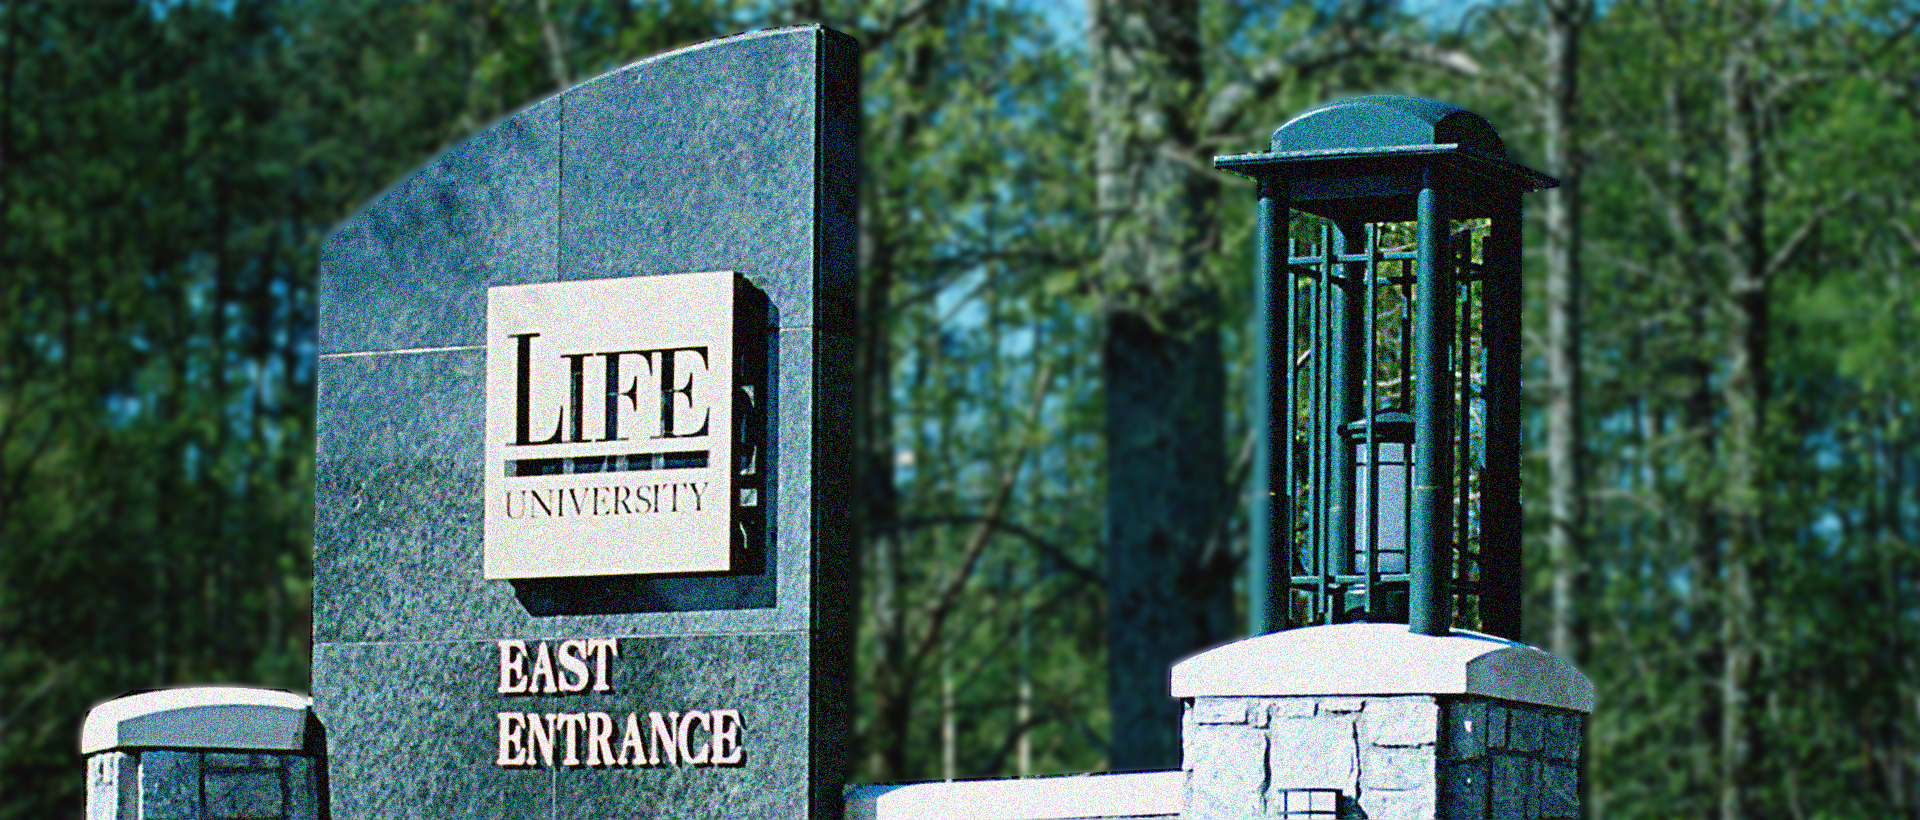 Life University - College of Chiropractic Education Building - CCE-127